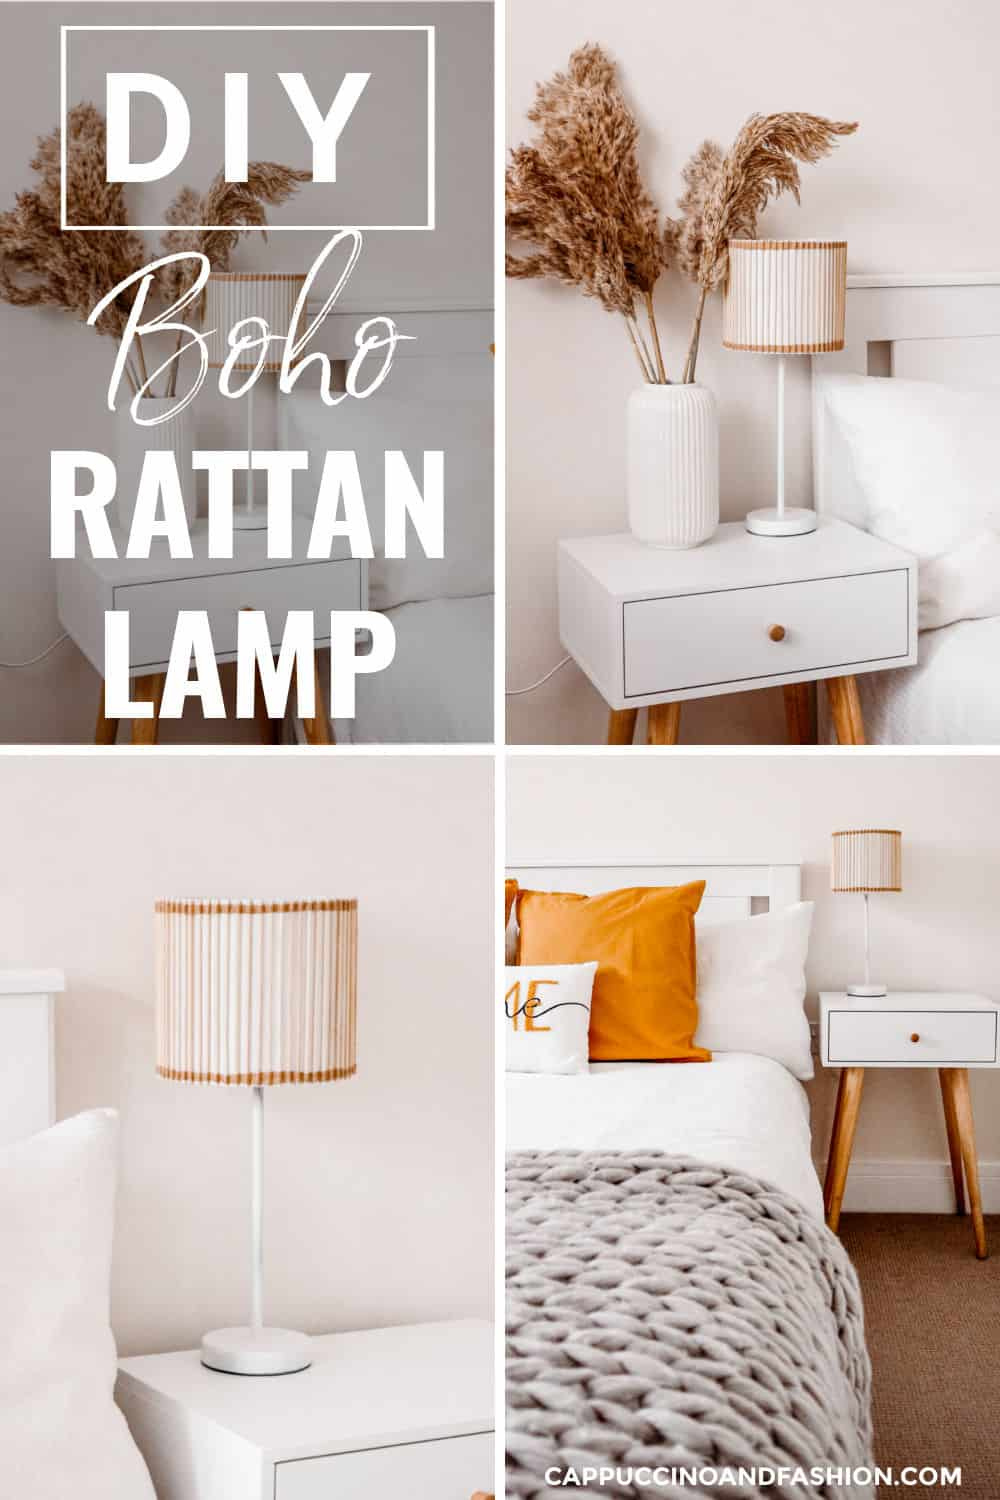 DIY Boho Rattan Lamp Scandi Home Decor